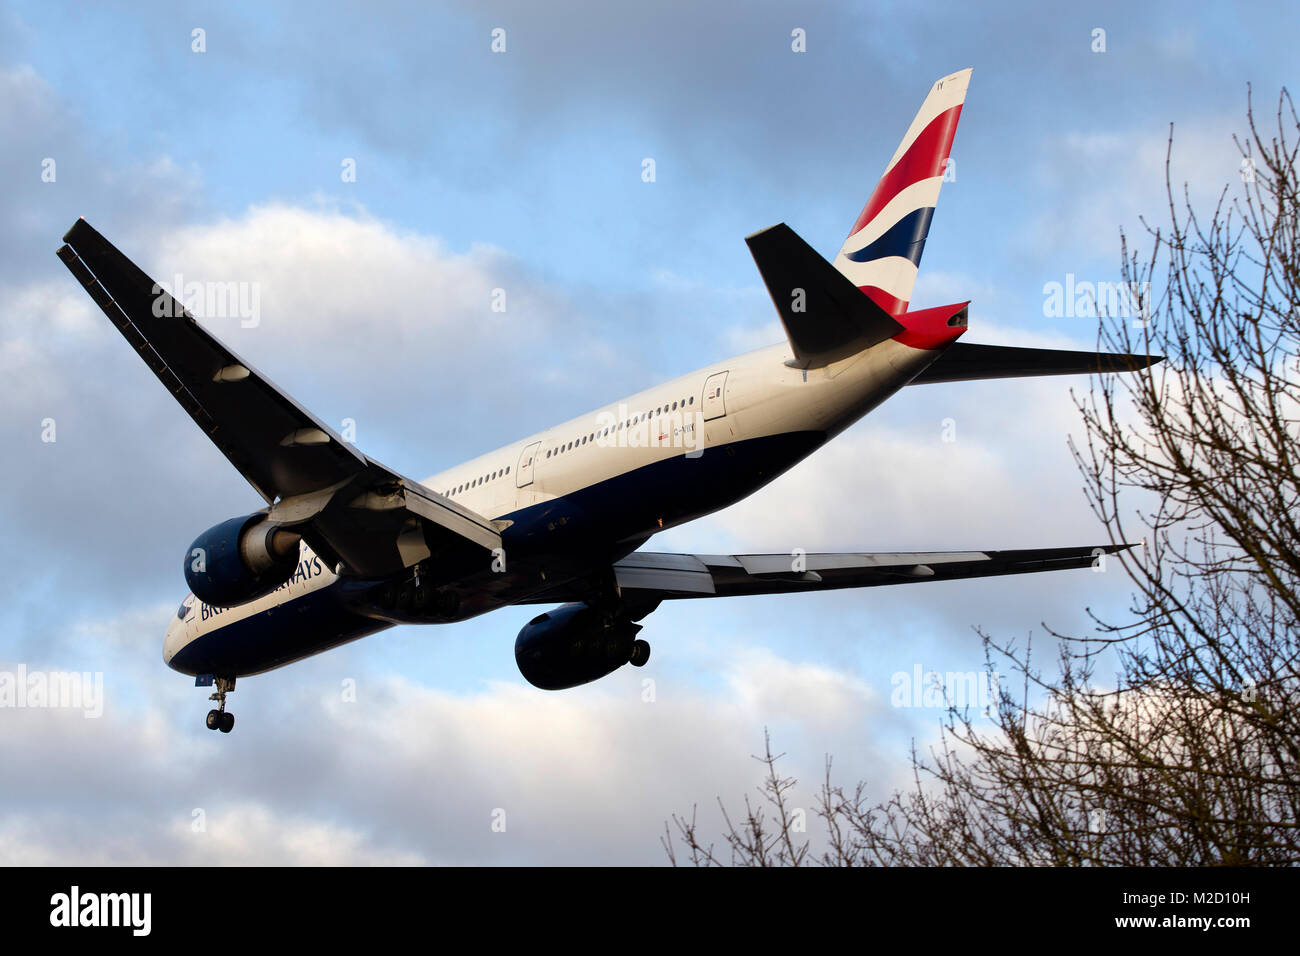 A British Airways Boeing 777 aircraft on final approach to London Gatwick airport on a January morning - Stock Image